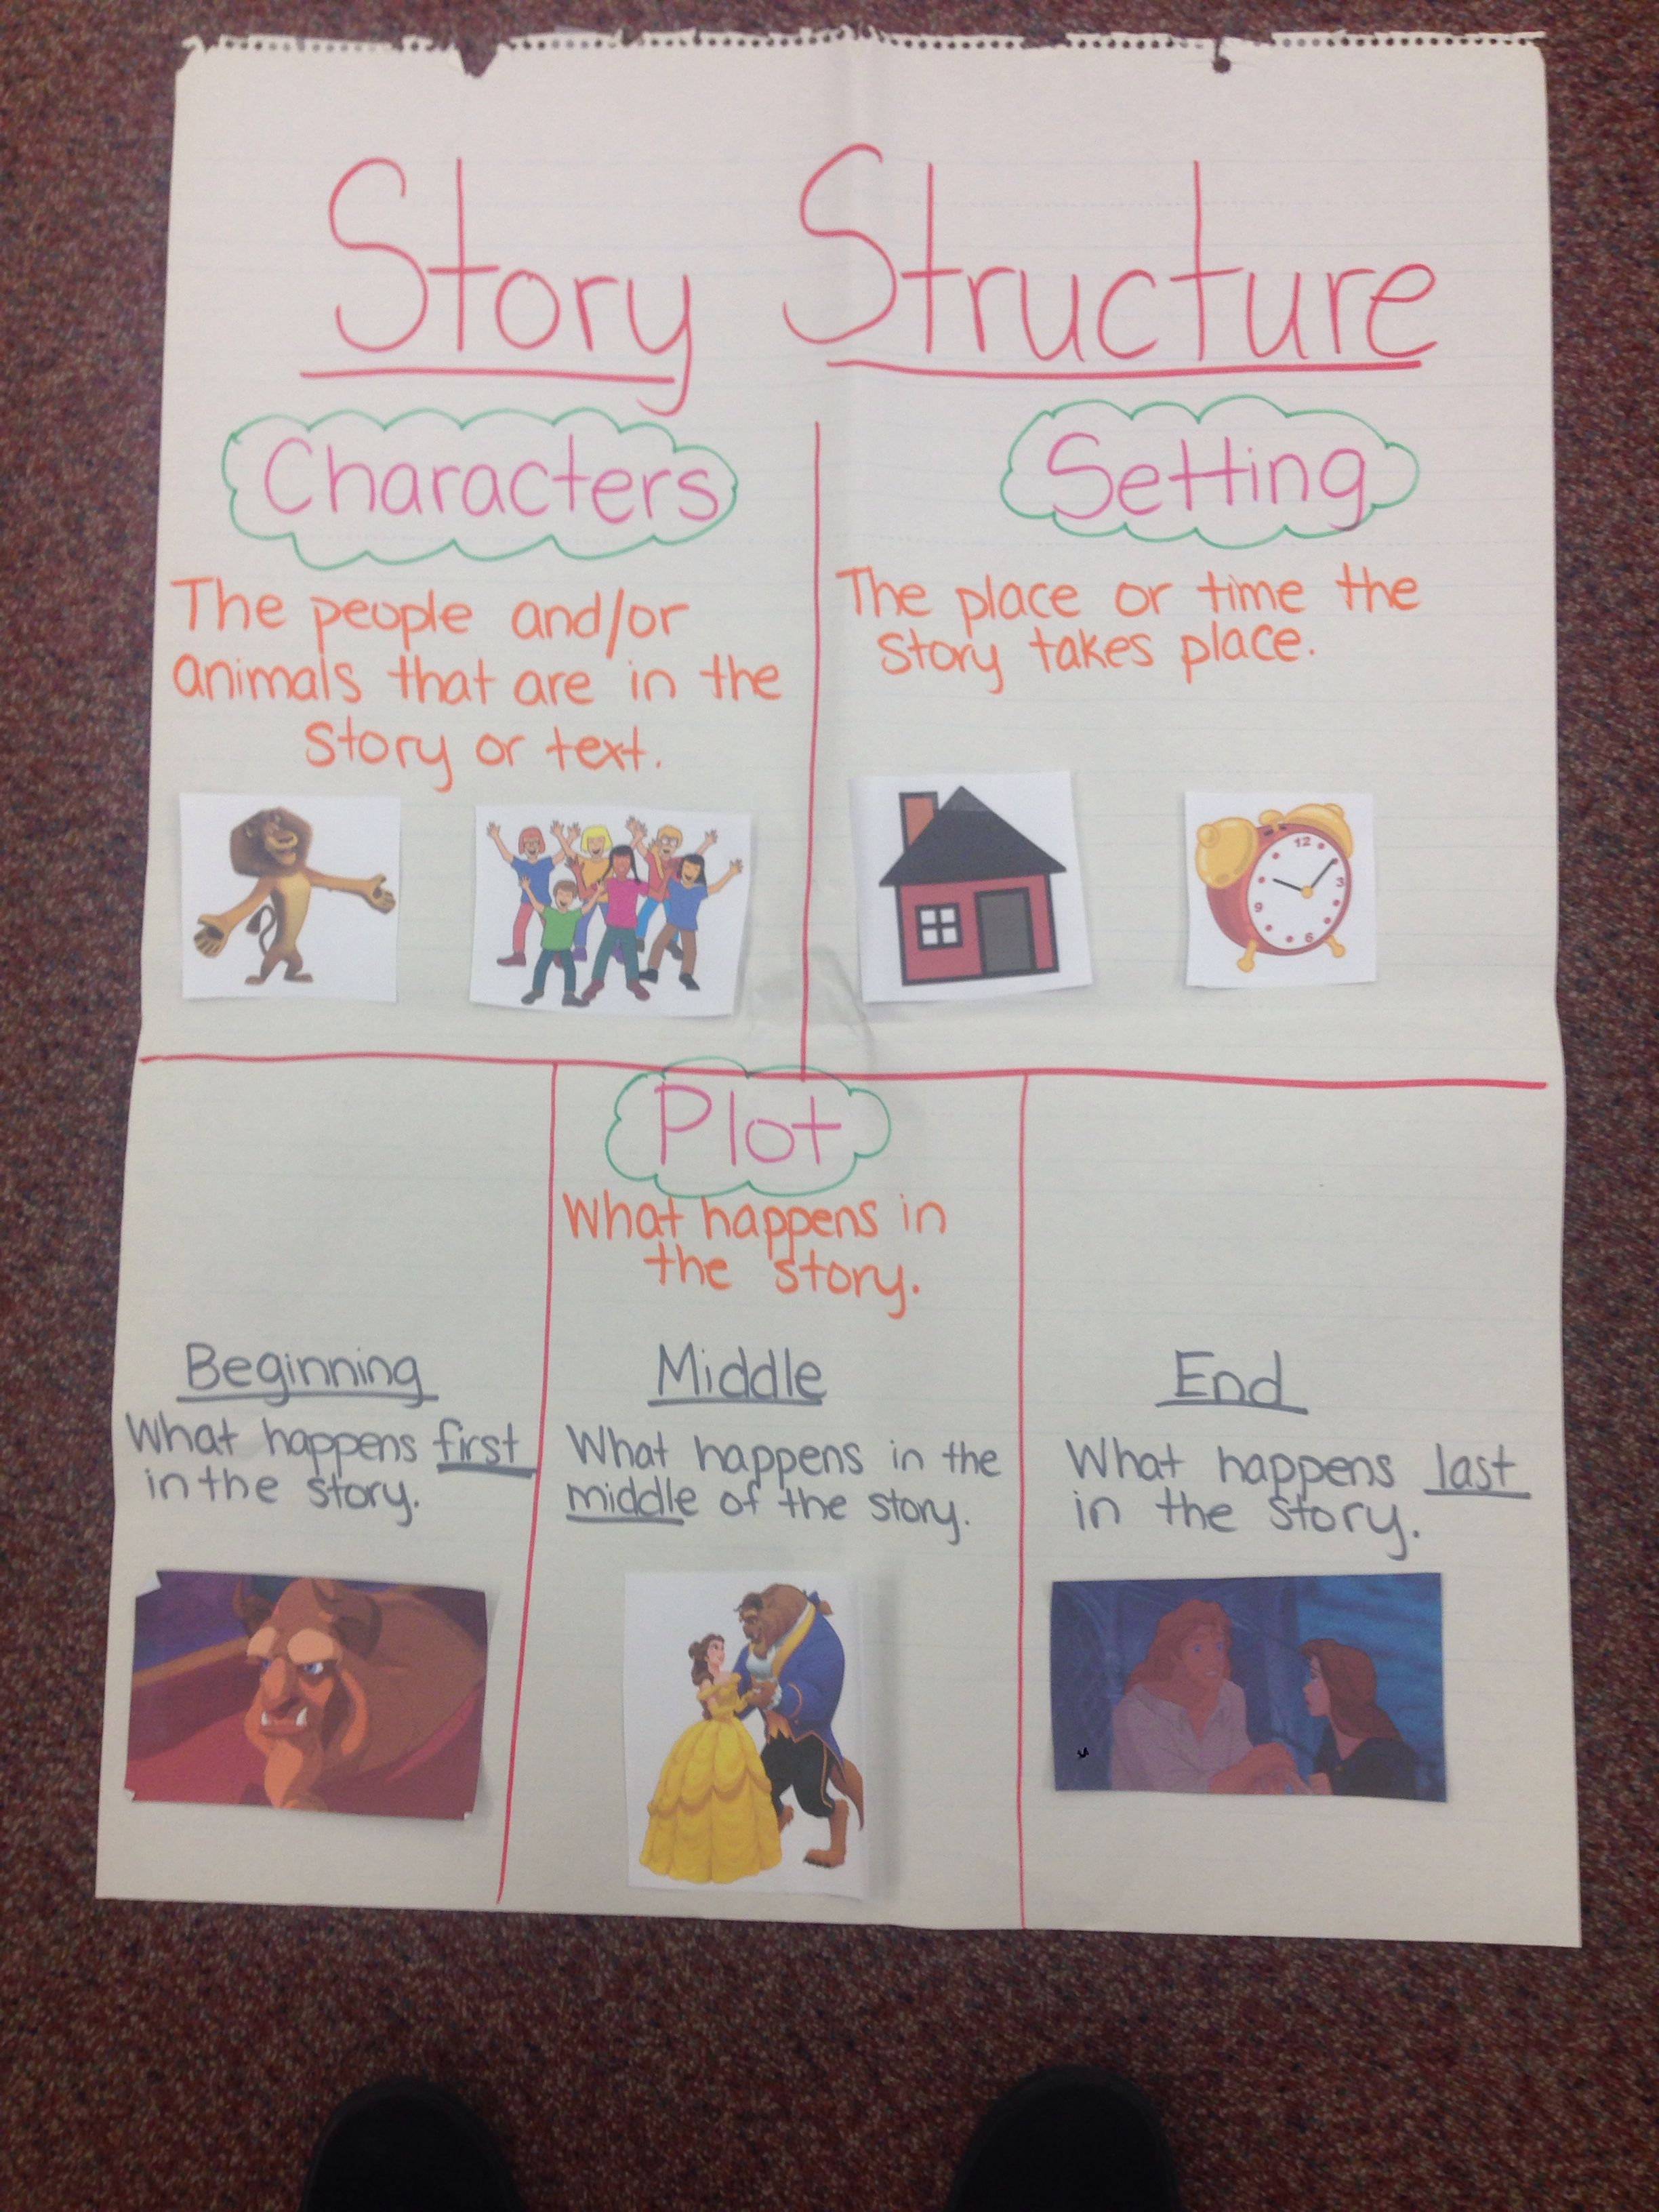 Story Structure Anchor Chartuld Use Idea On White Board